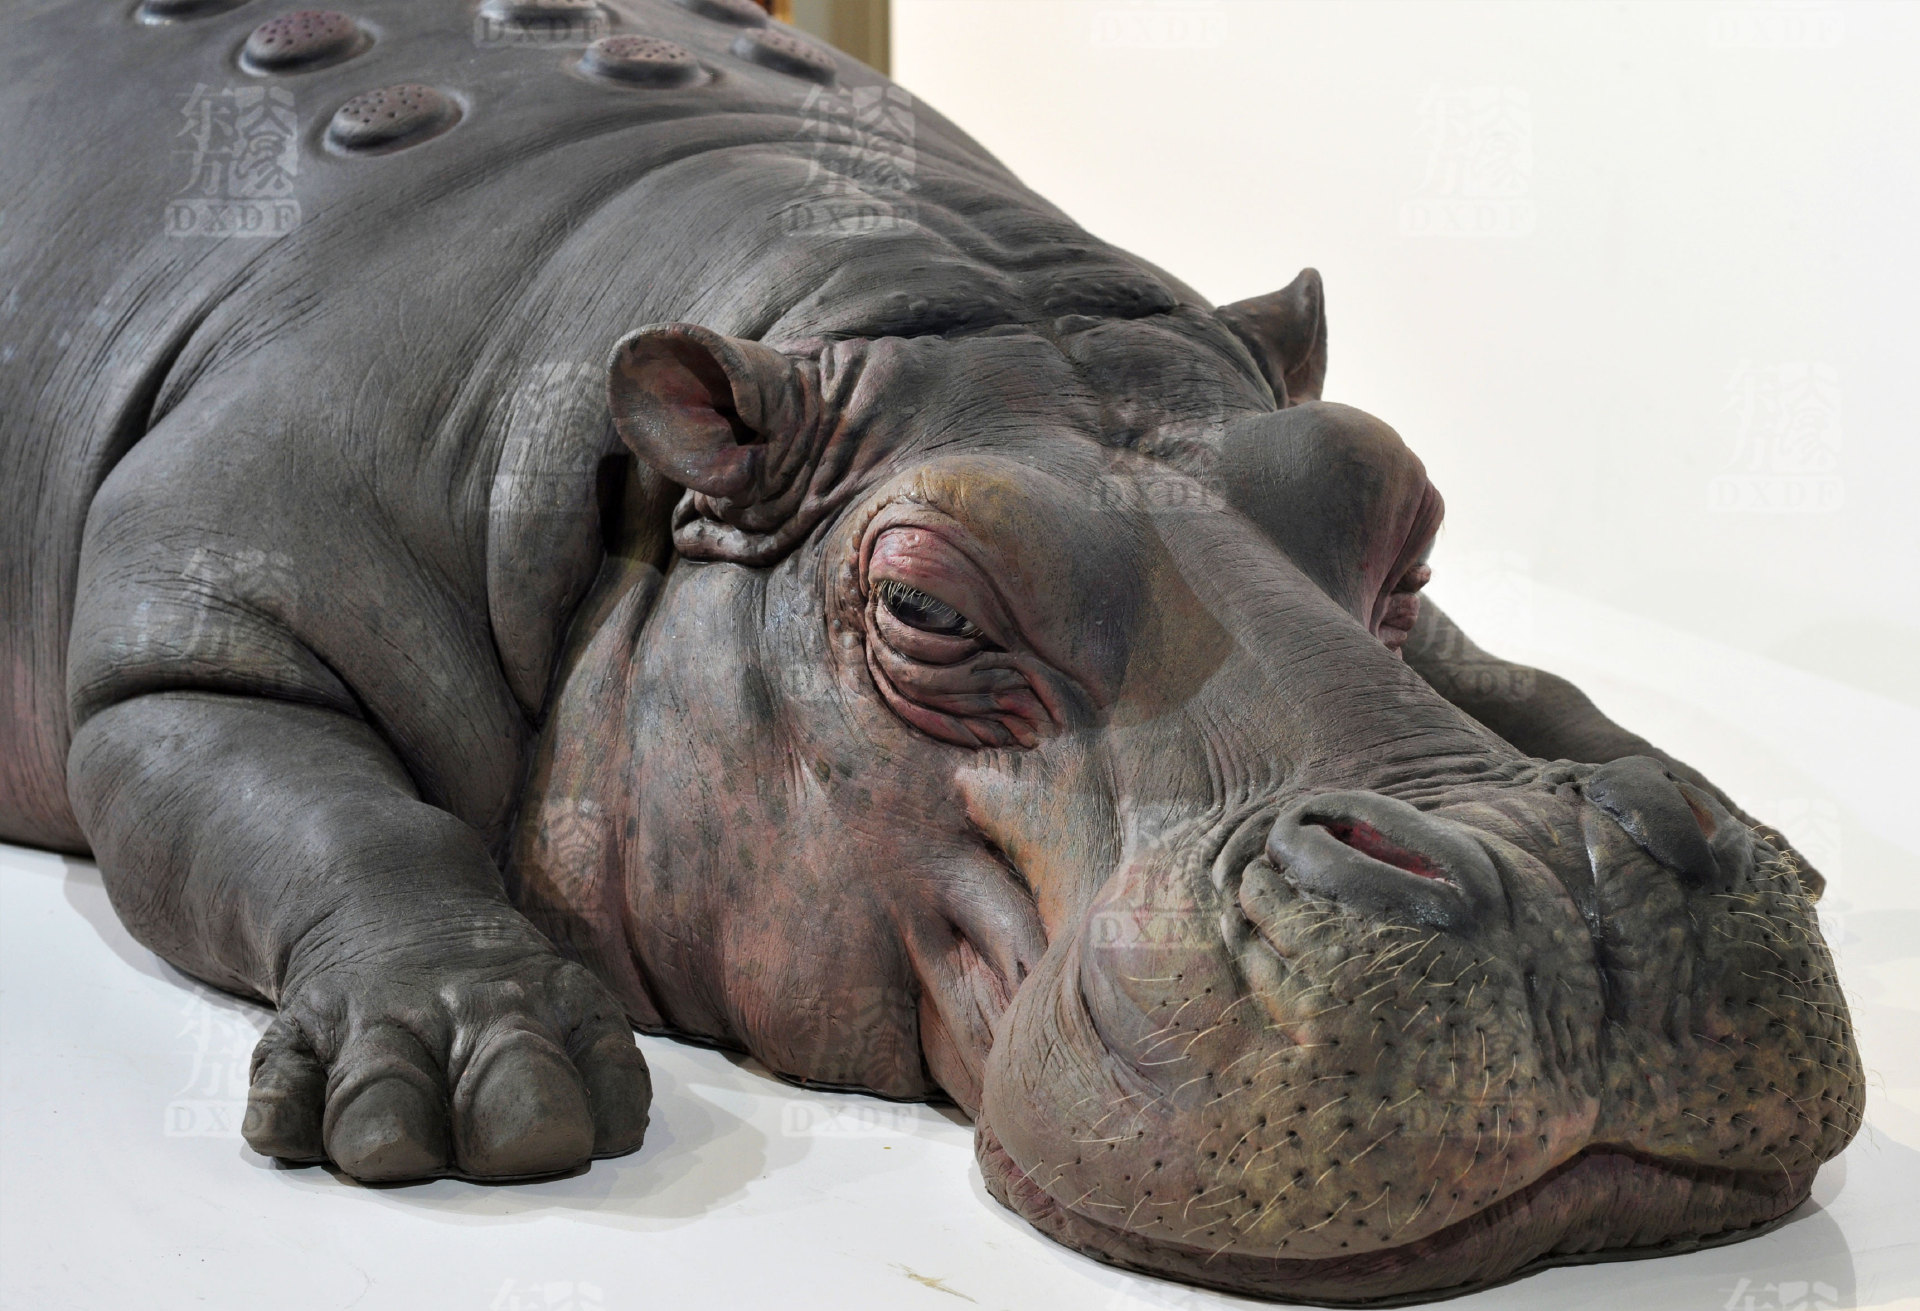 Giant Lifelike Sculptures of Hippo